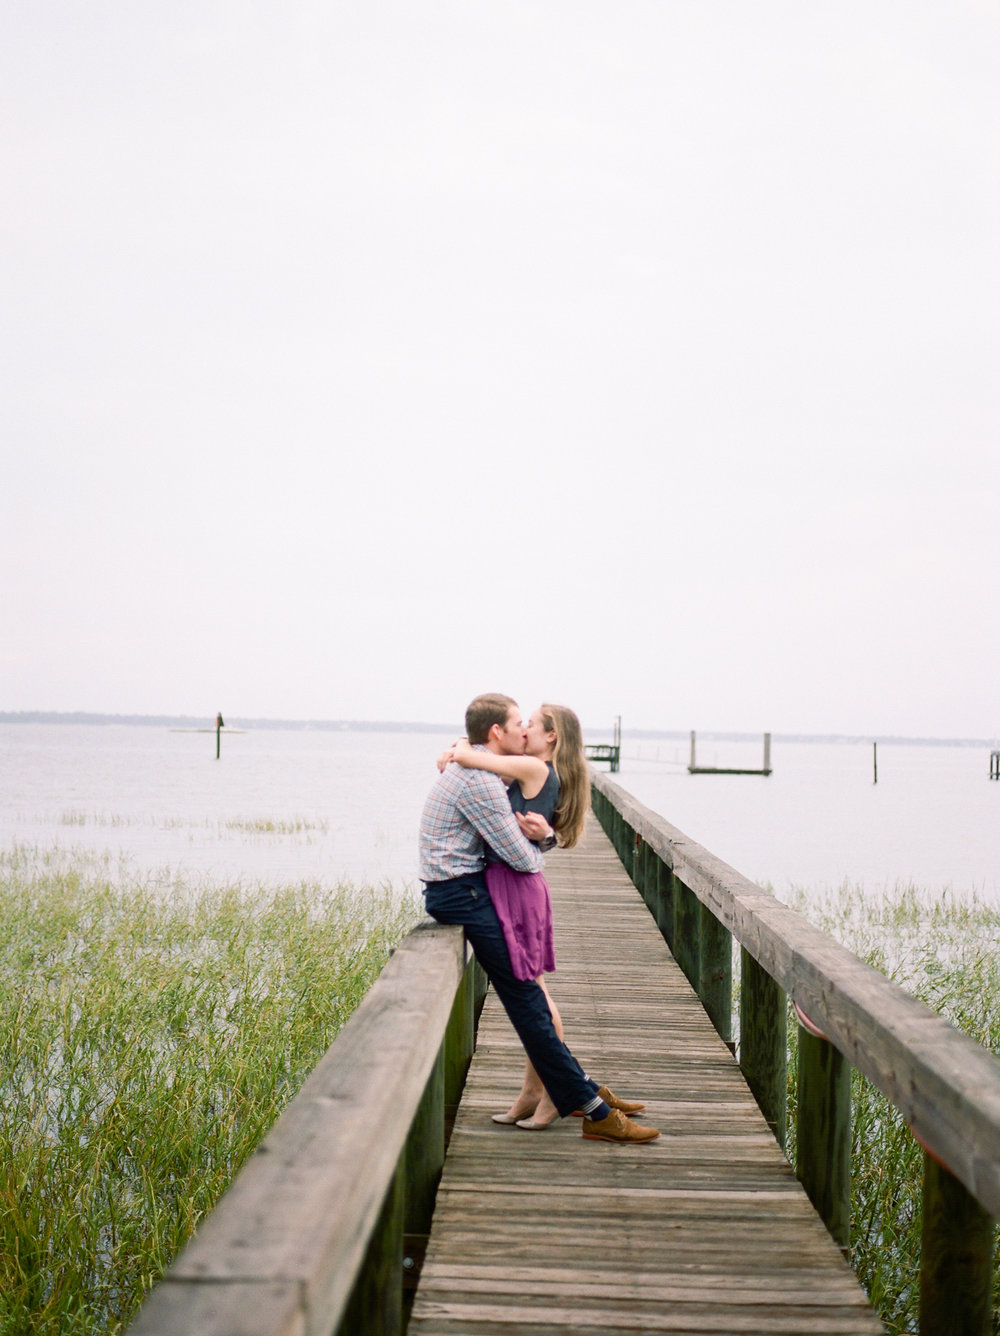 Greg-Allison-Charleston-Wedding-Photographer-Christina-Pugh-58.jpg